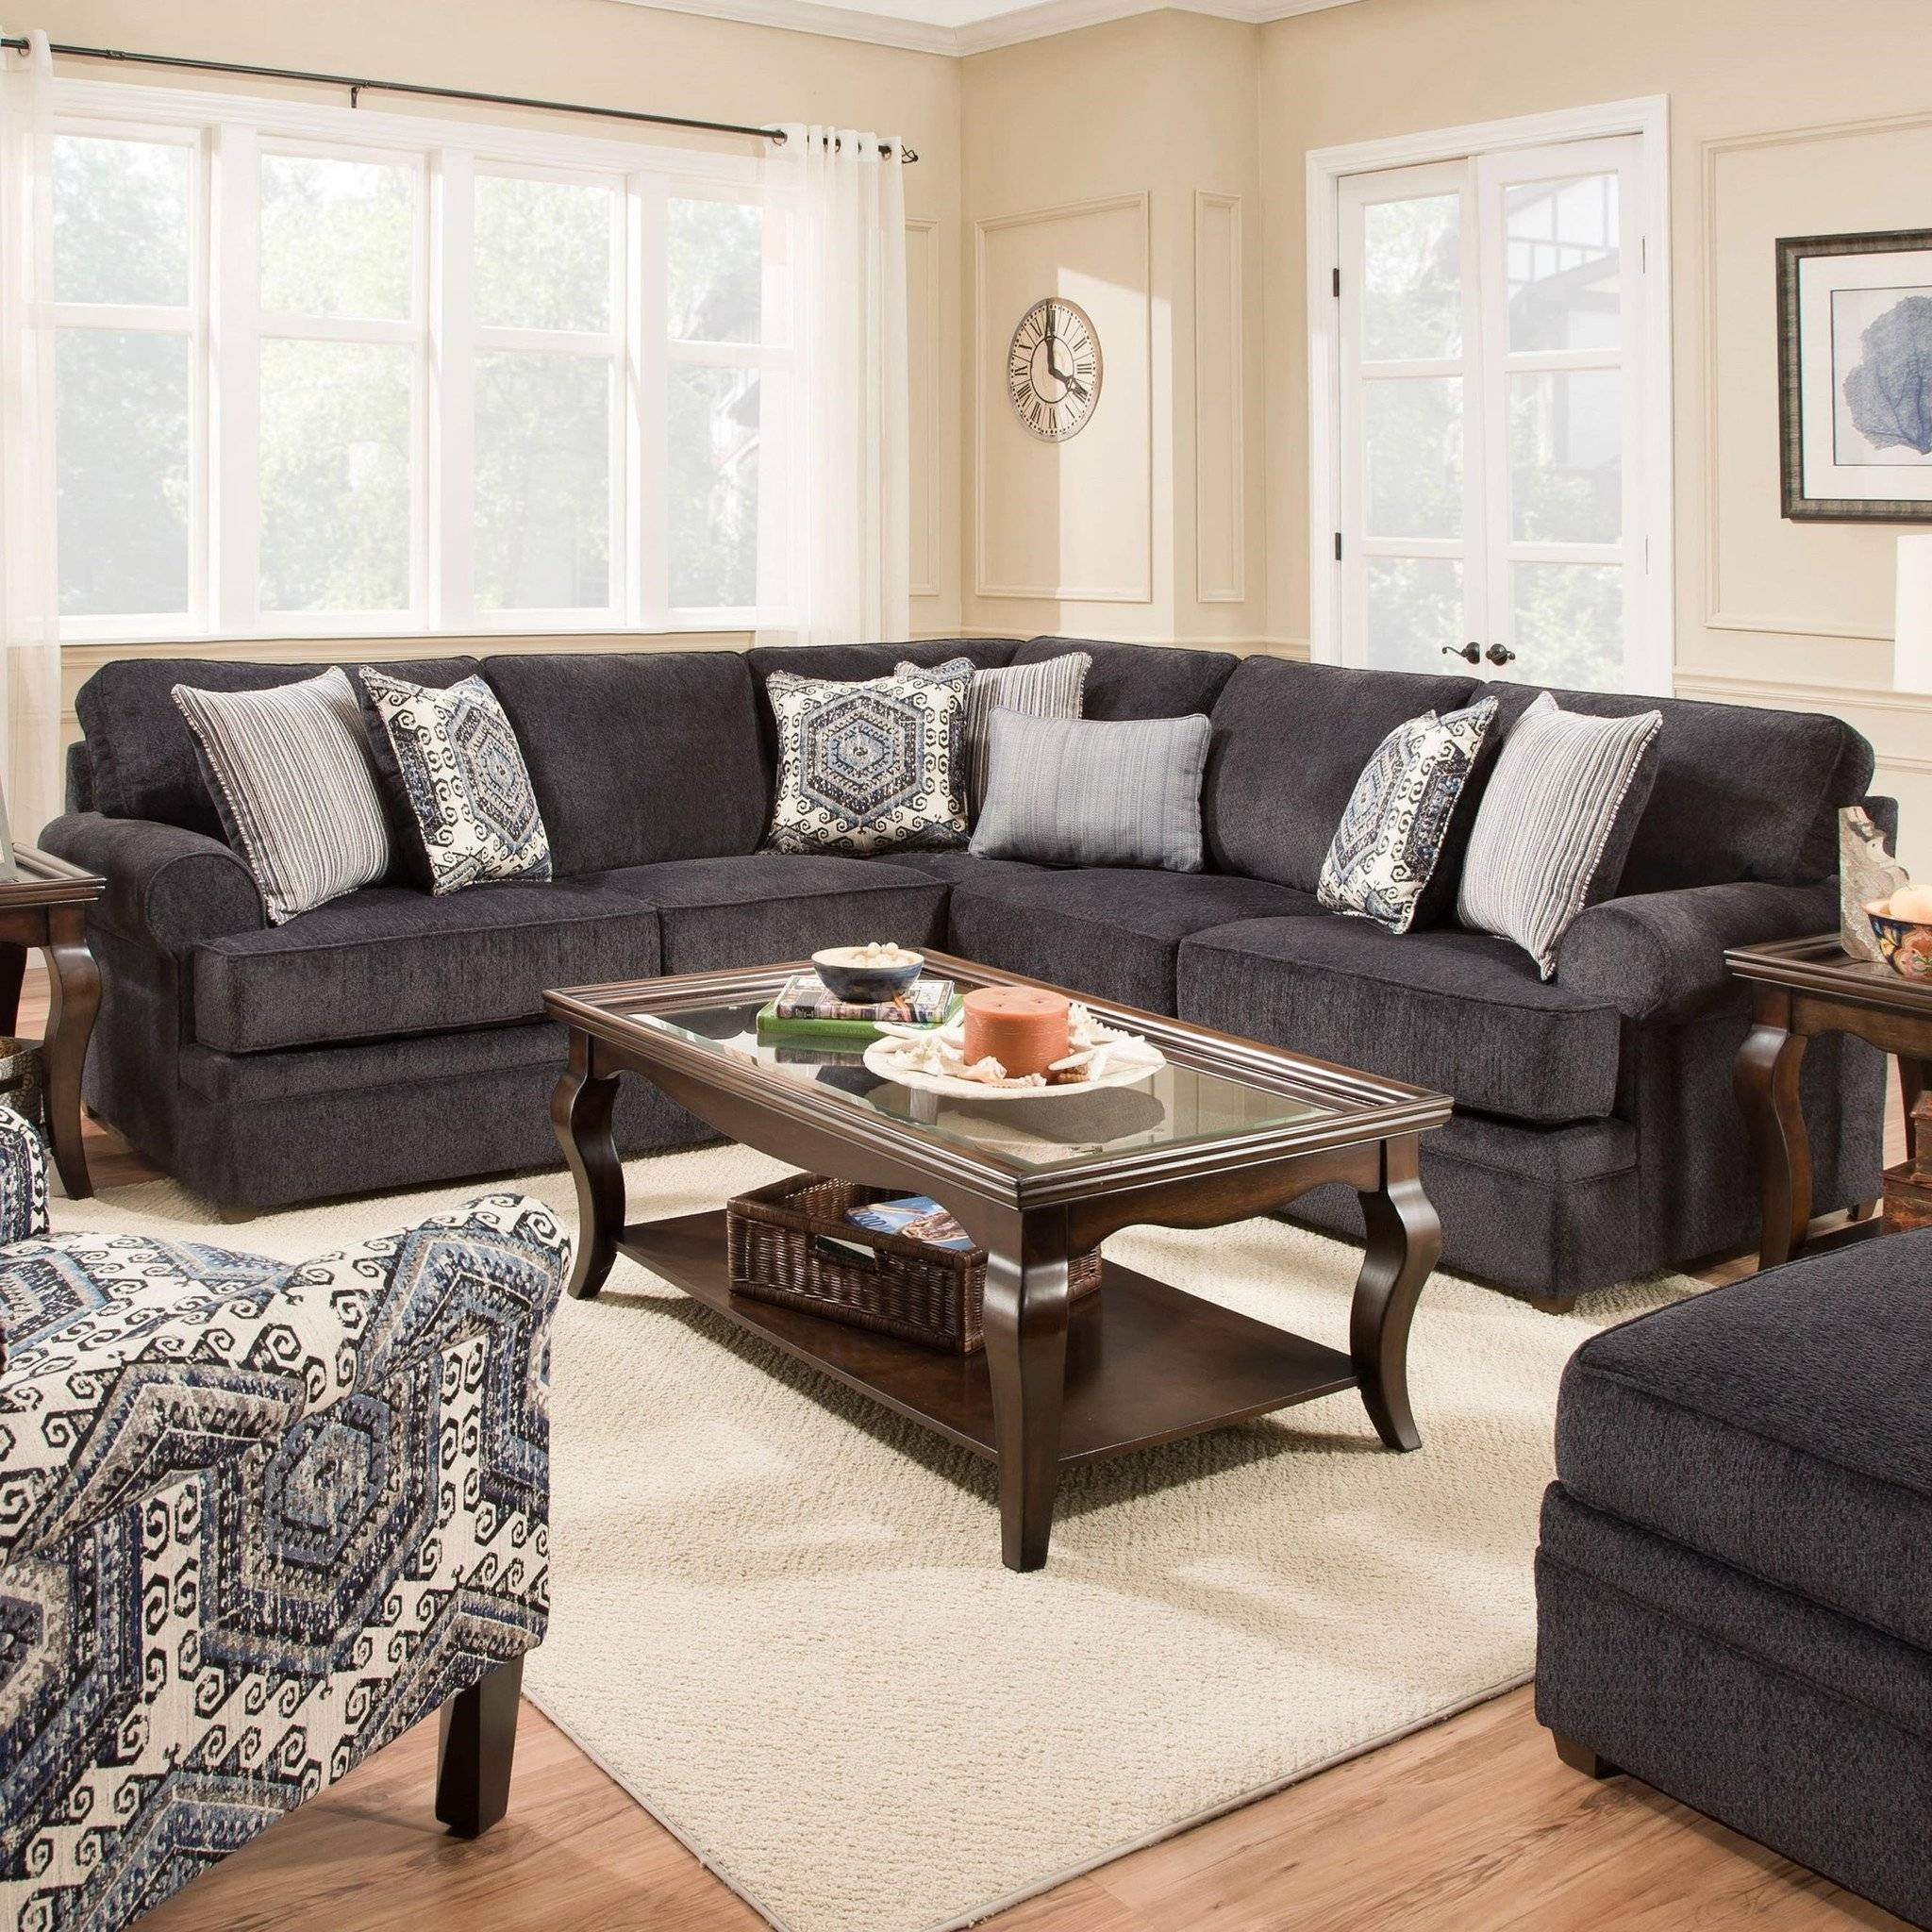 Furniture: Simmons Sectional For Comfortable Seating — Threestems Pertaining To Simmons Microfiber Sofas (View 10 of 15)